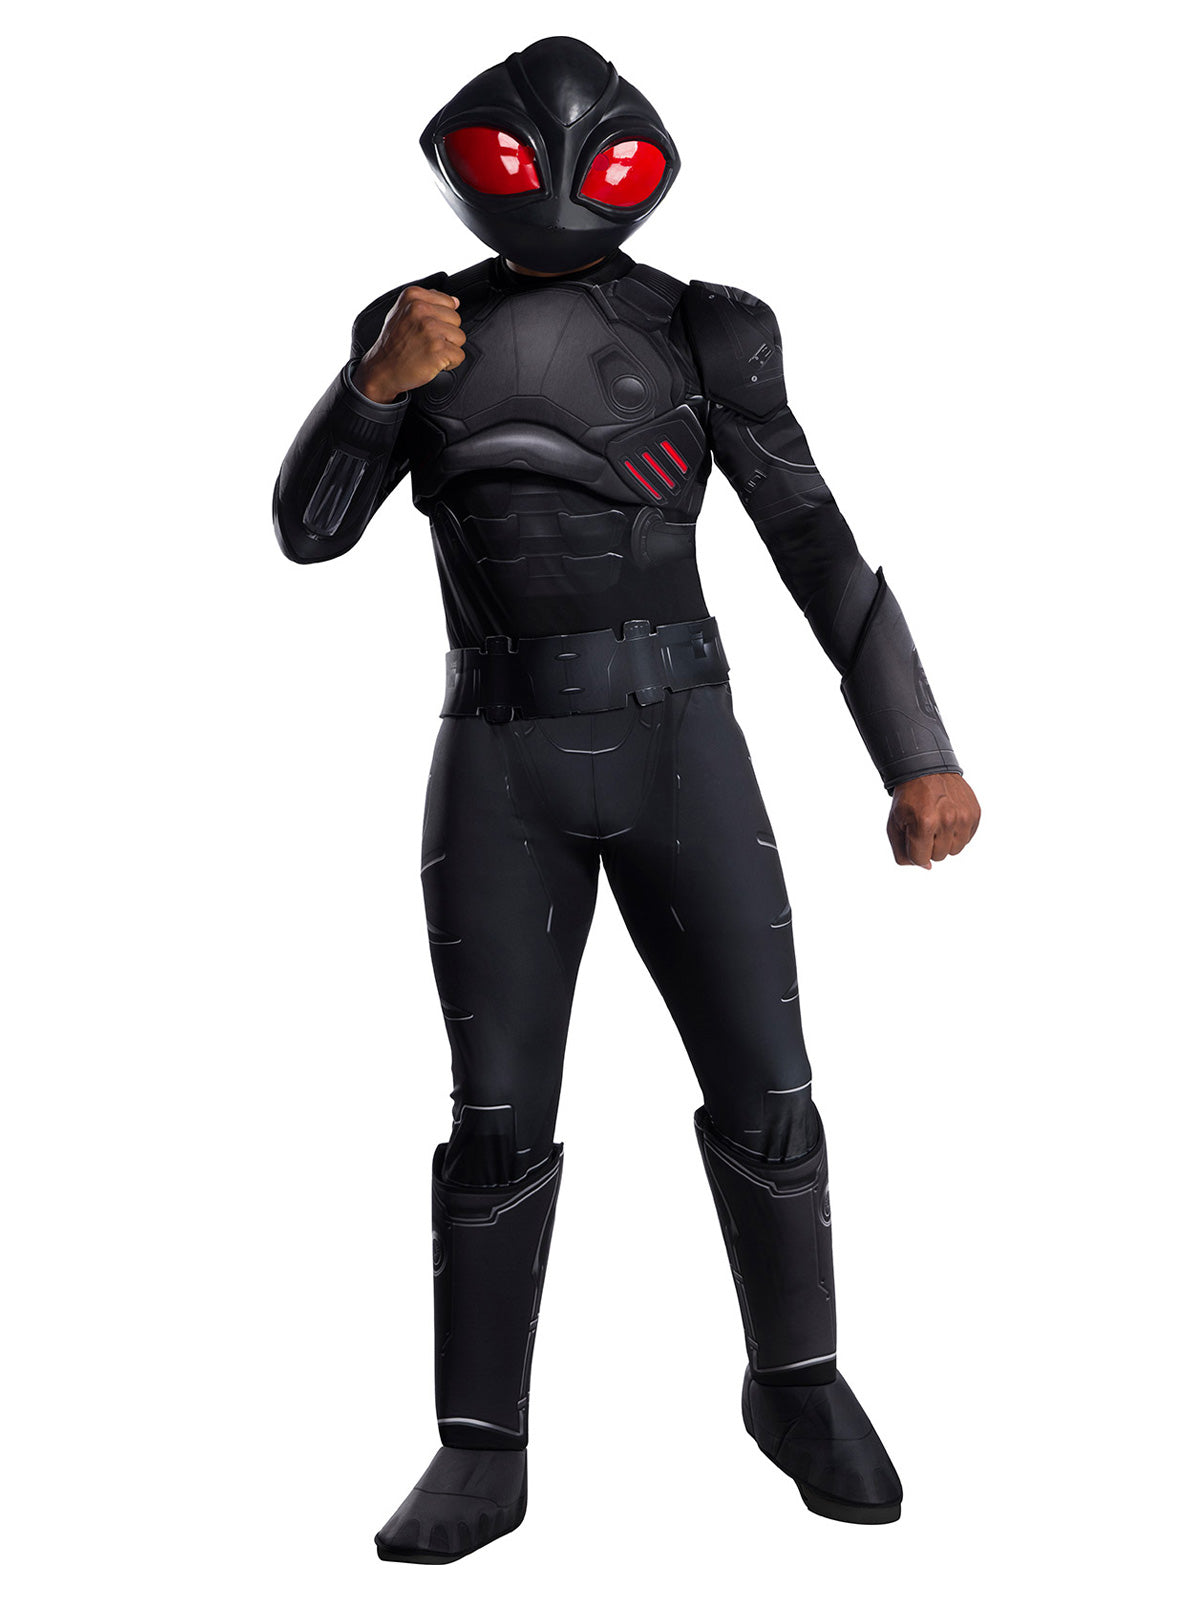 Aquaman Black Manta Costume - Buy Online Only